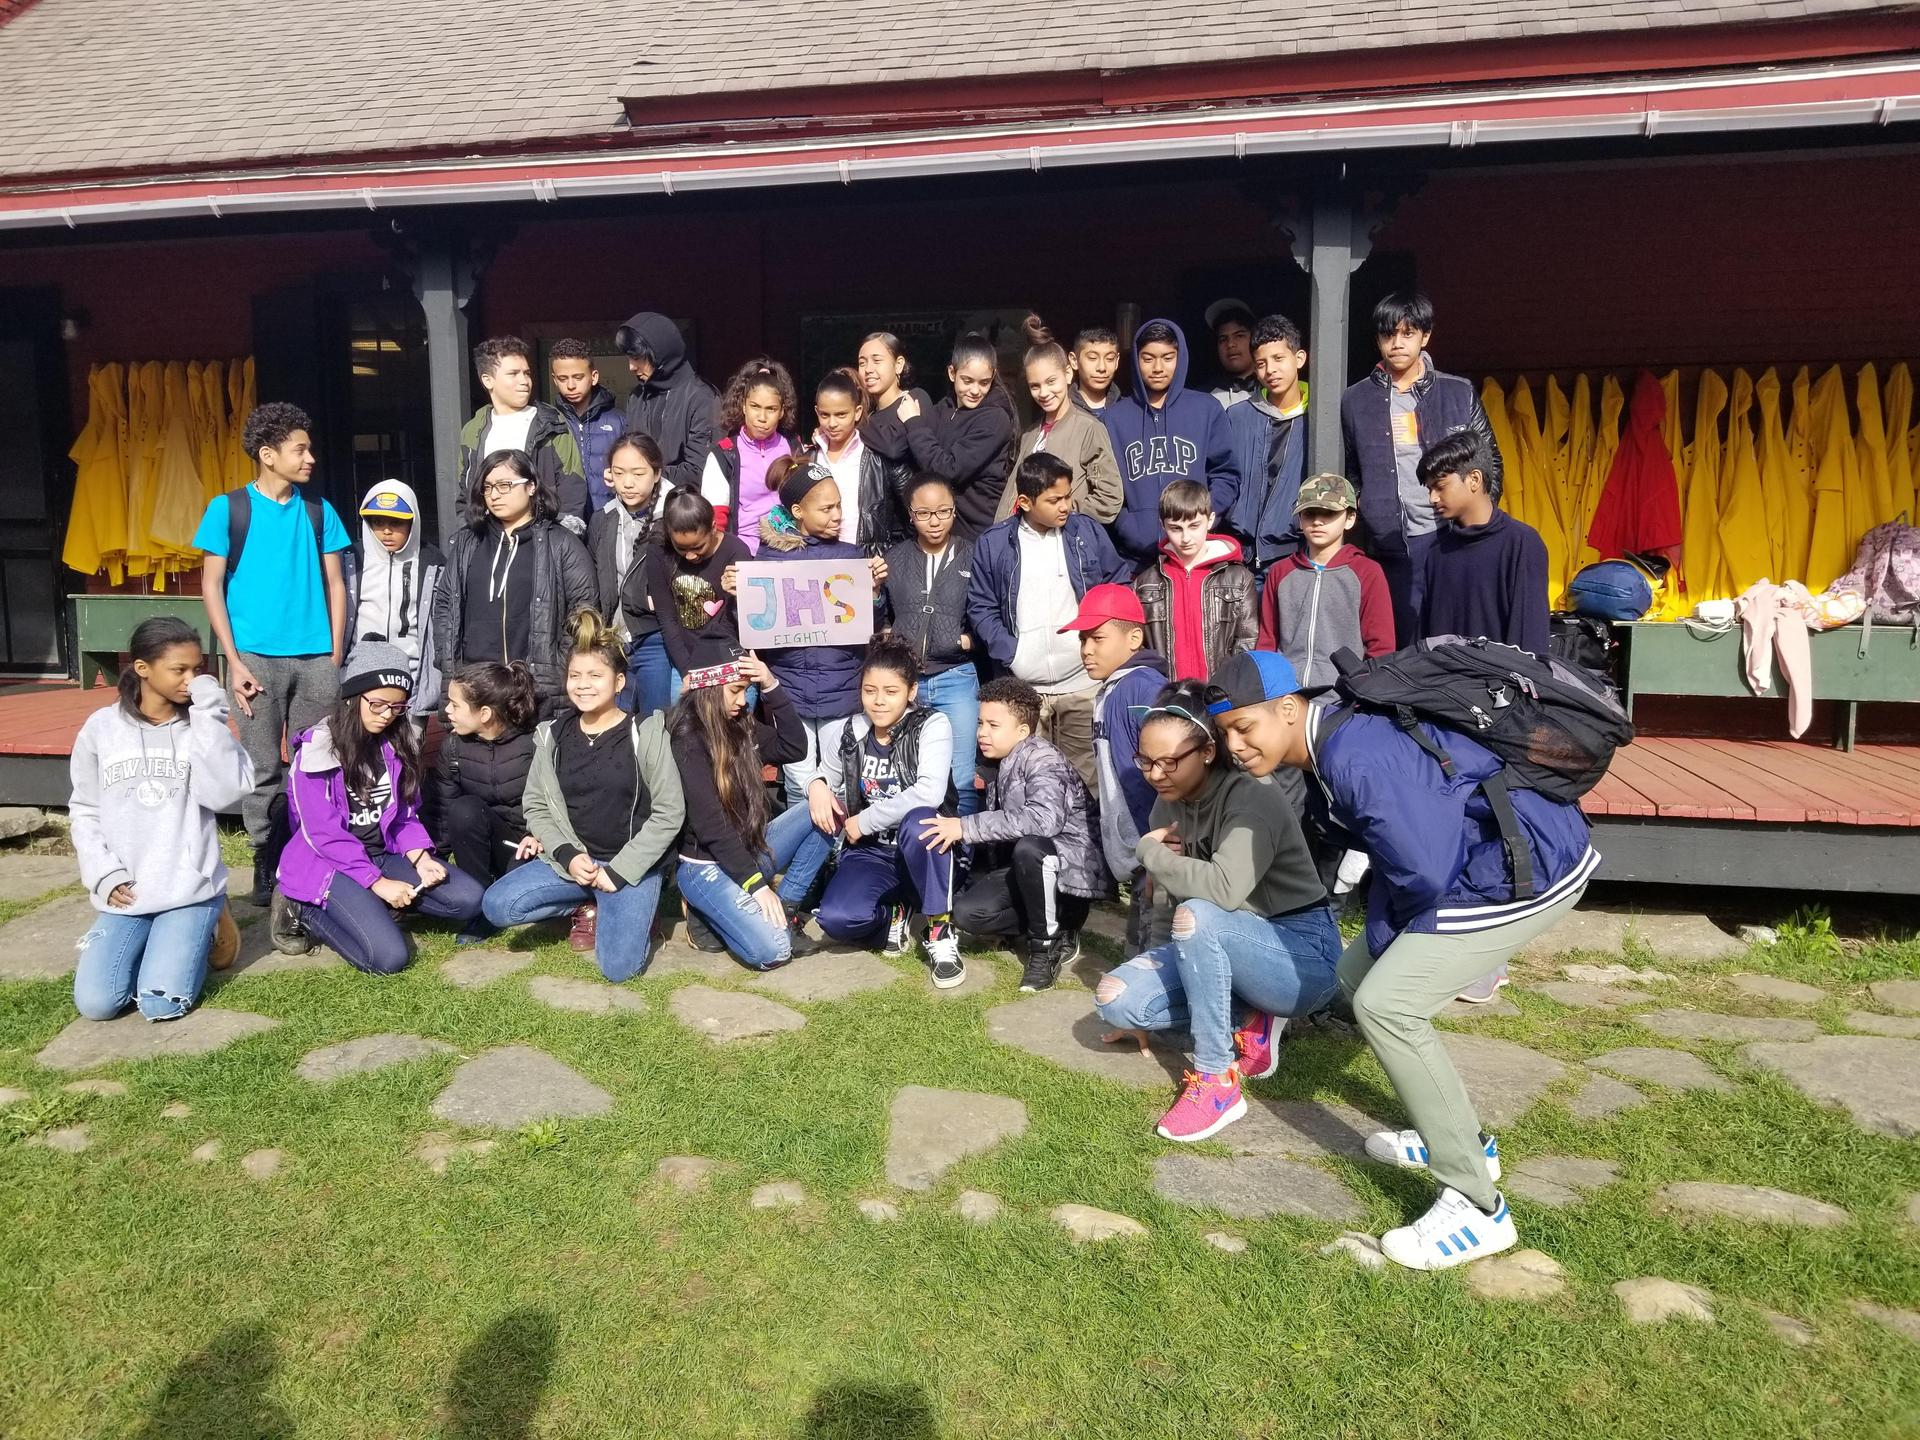 Spring 2018 - M.S. 80 Manice Education Center Camping Trip